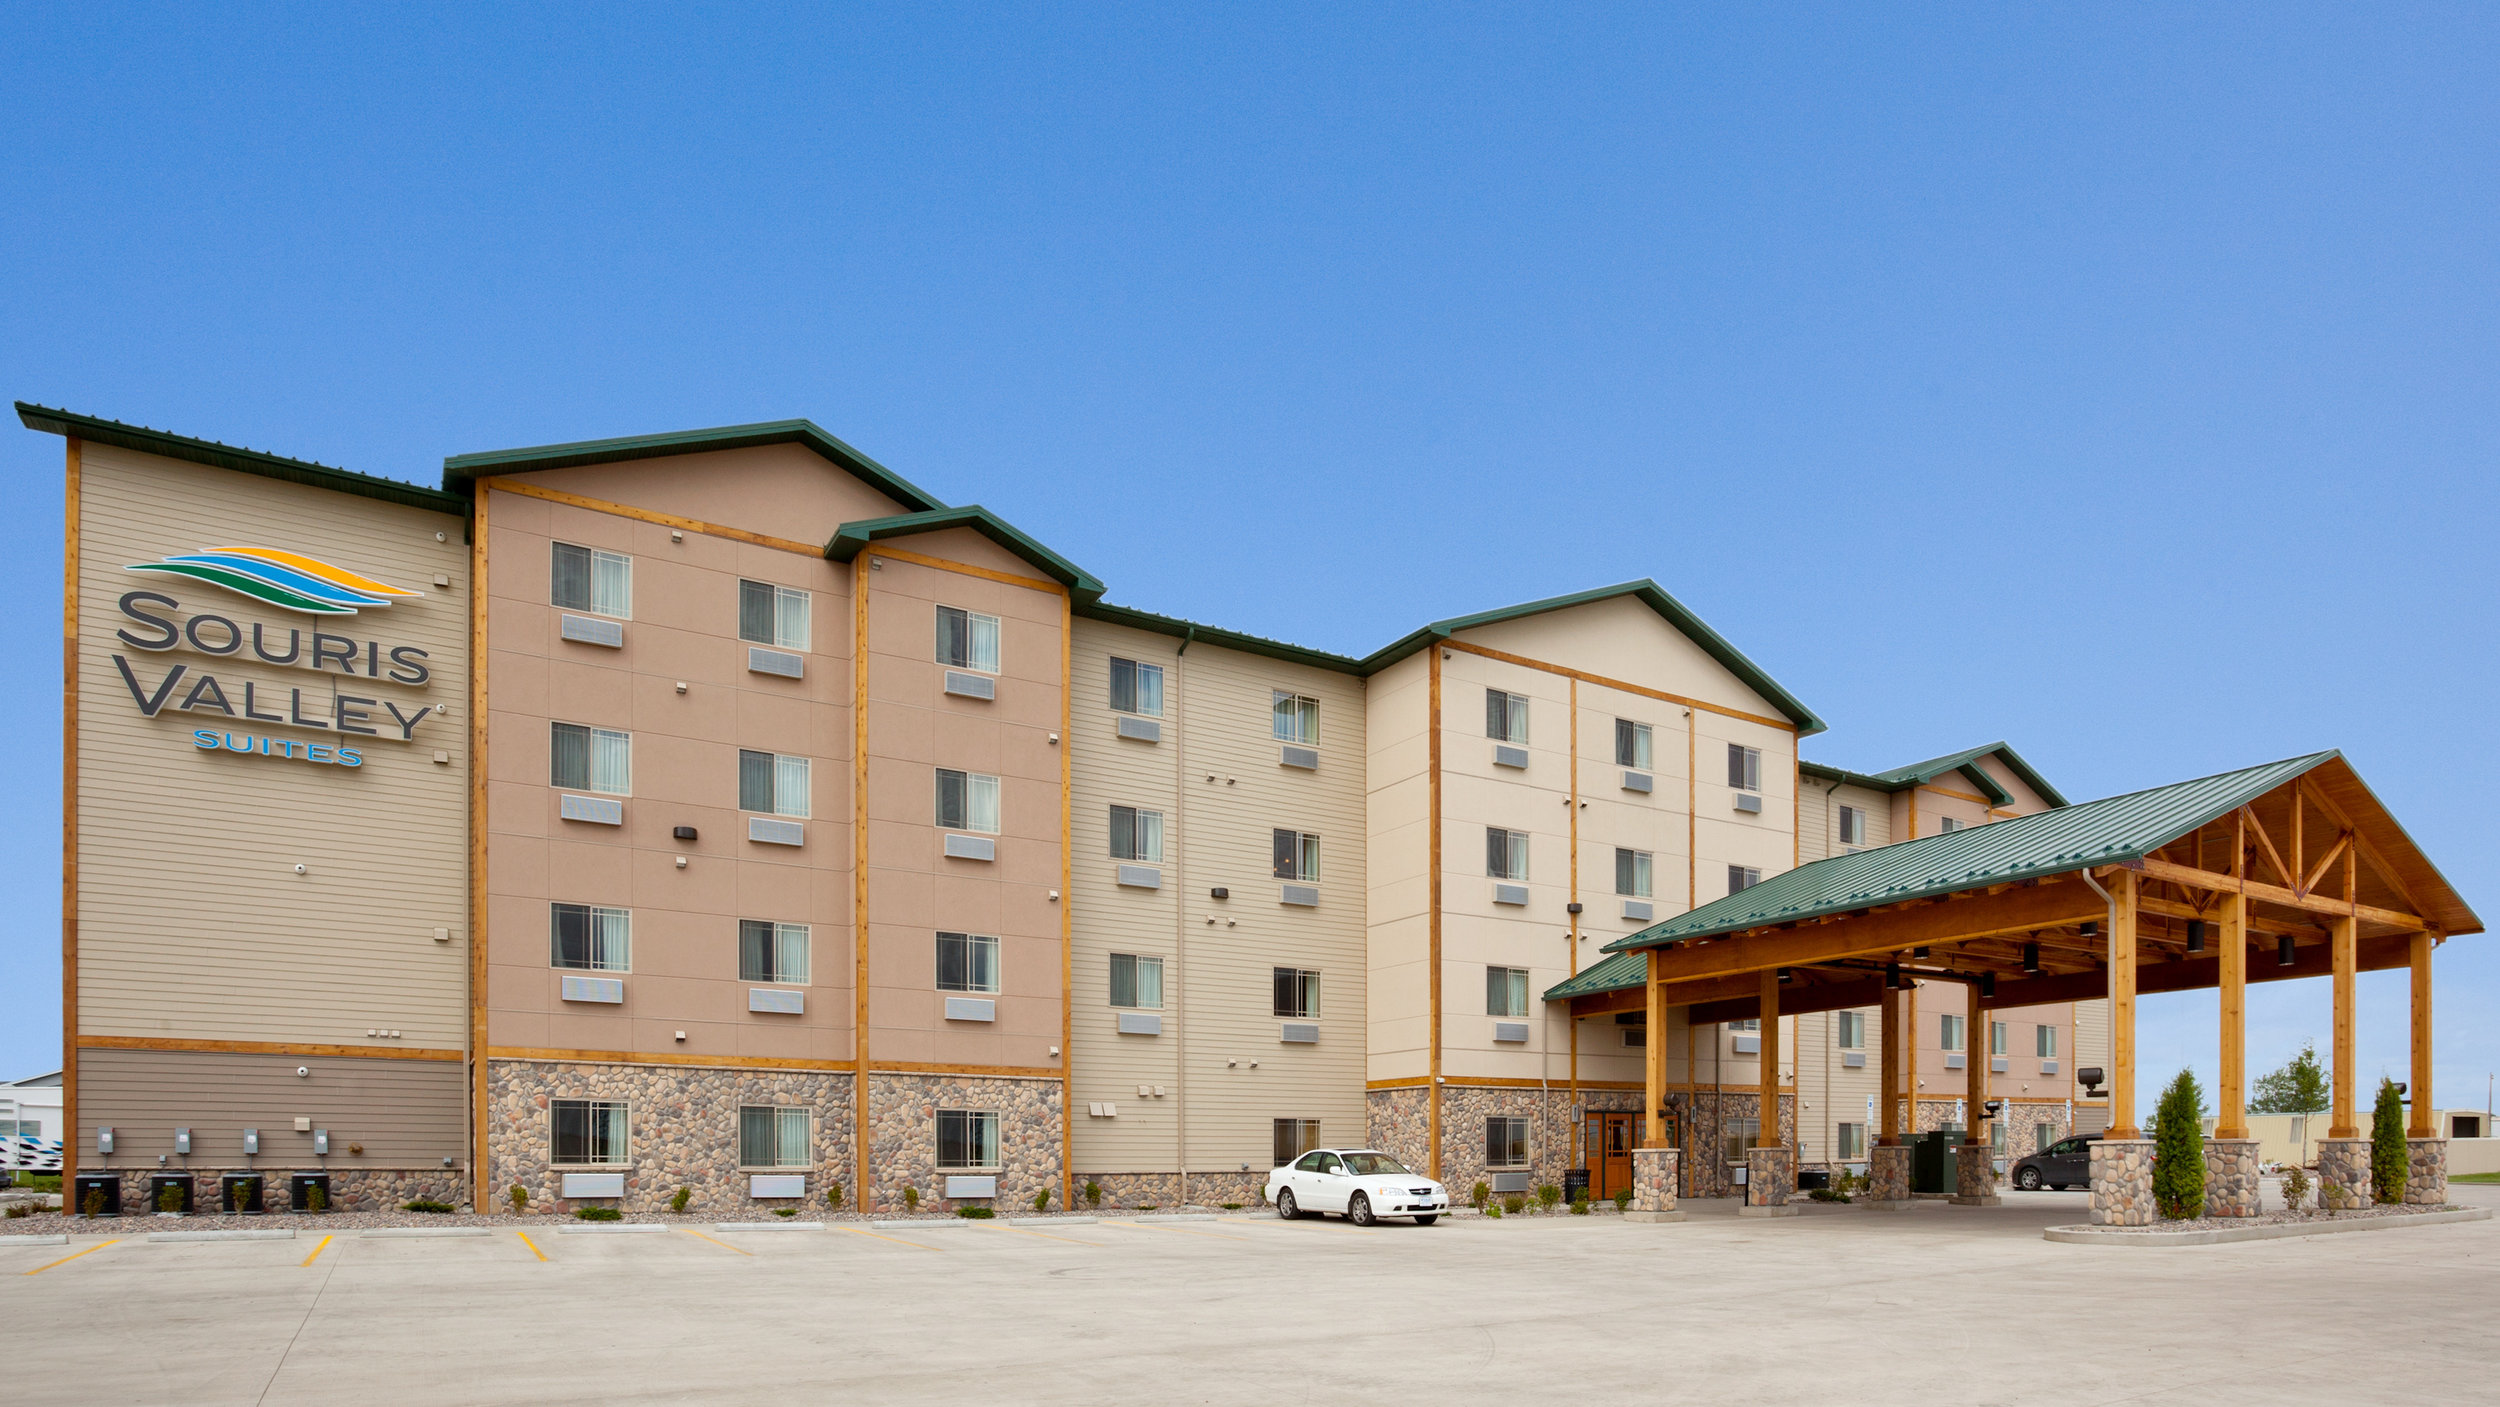 Outside view of the Souris Valley Suites in Minot, ND